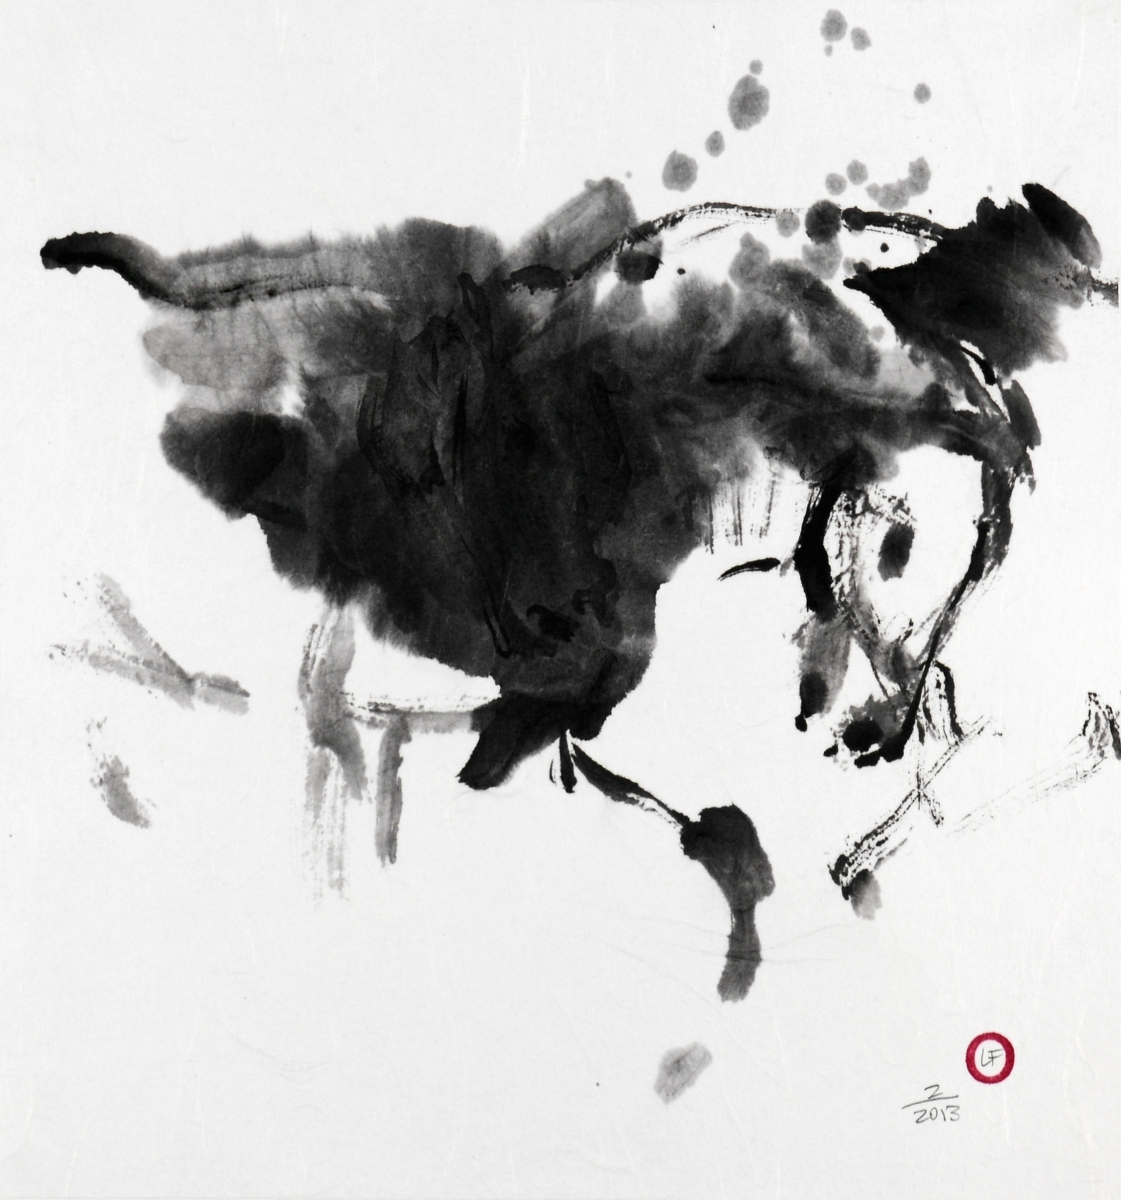 Horse sketch (large view)